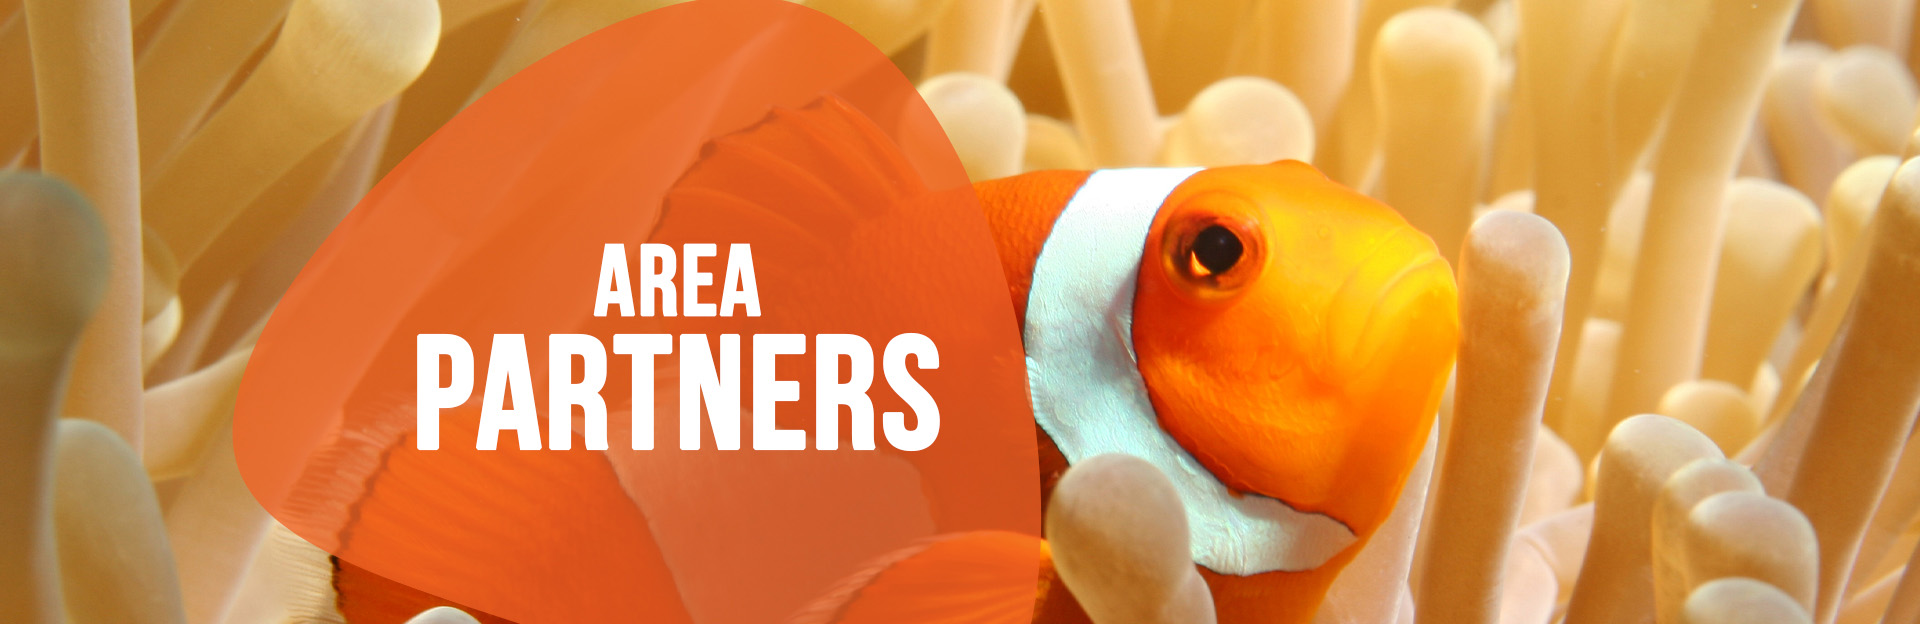 Header image for Area Partners page